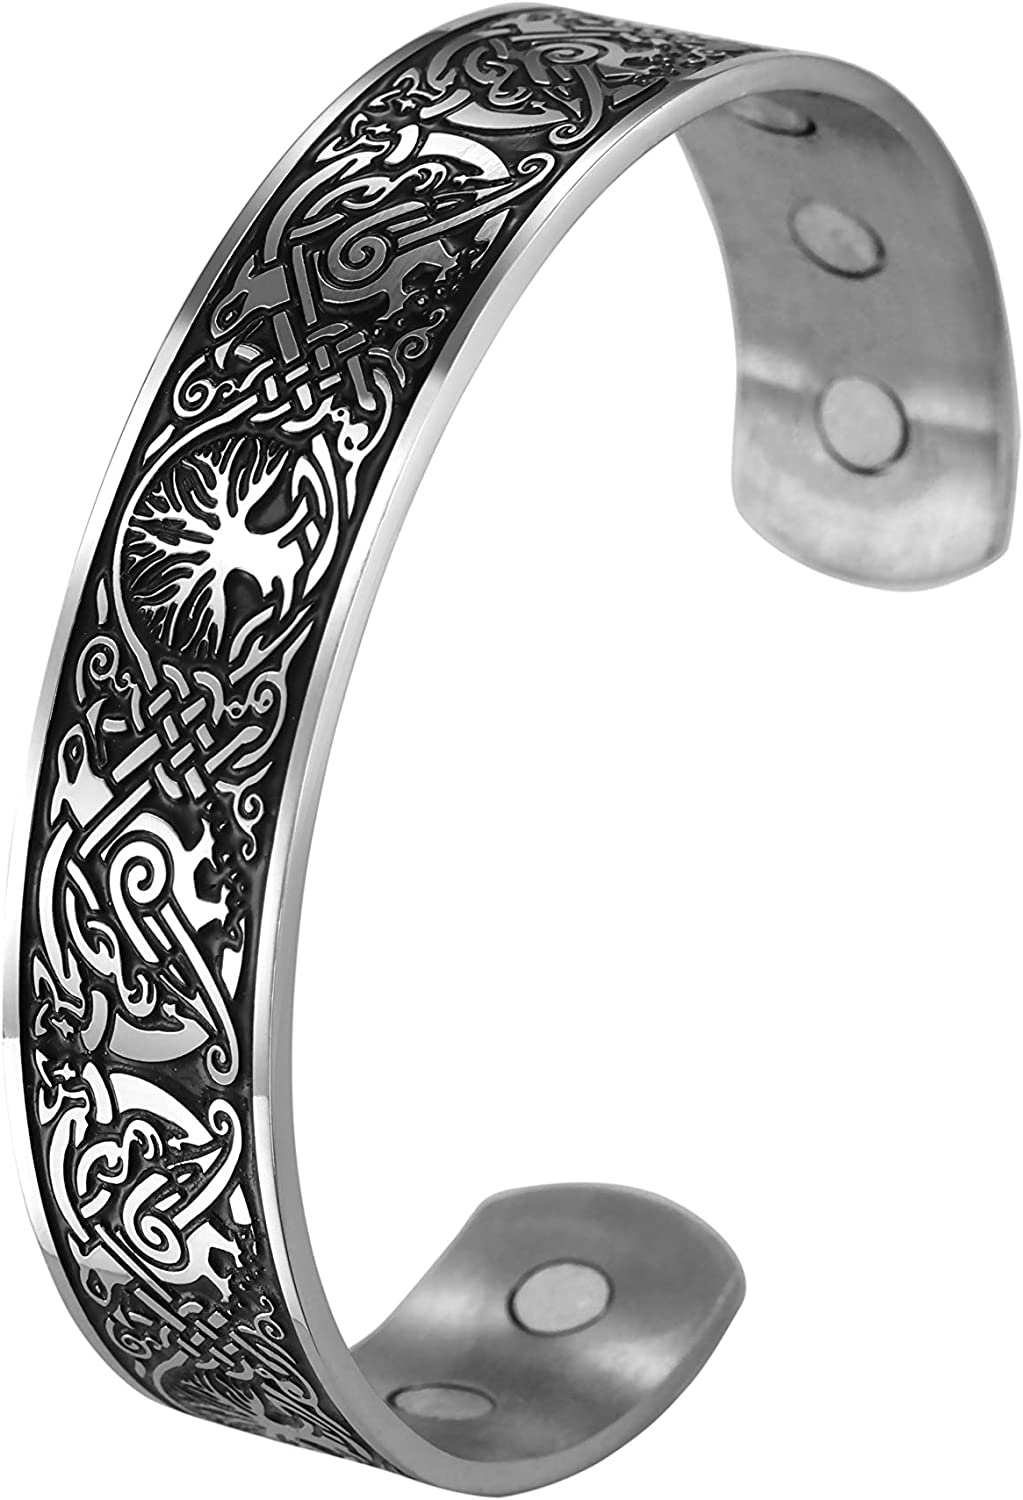 cooltime Ancient Nordic Tree of Life Odin's Raven Magnetic Bracelet Cuff